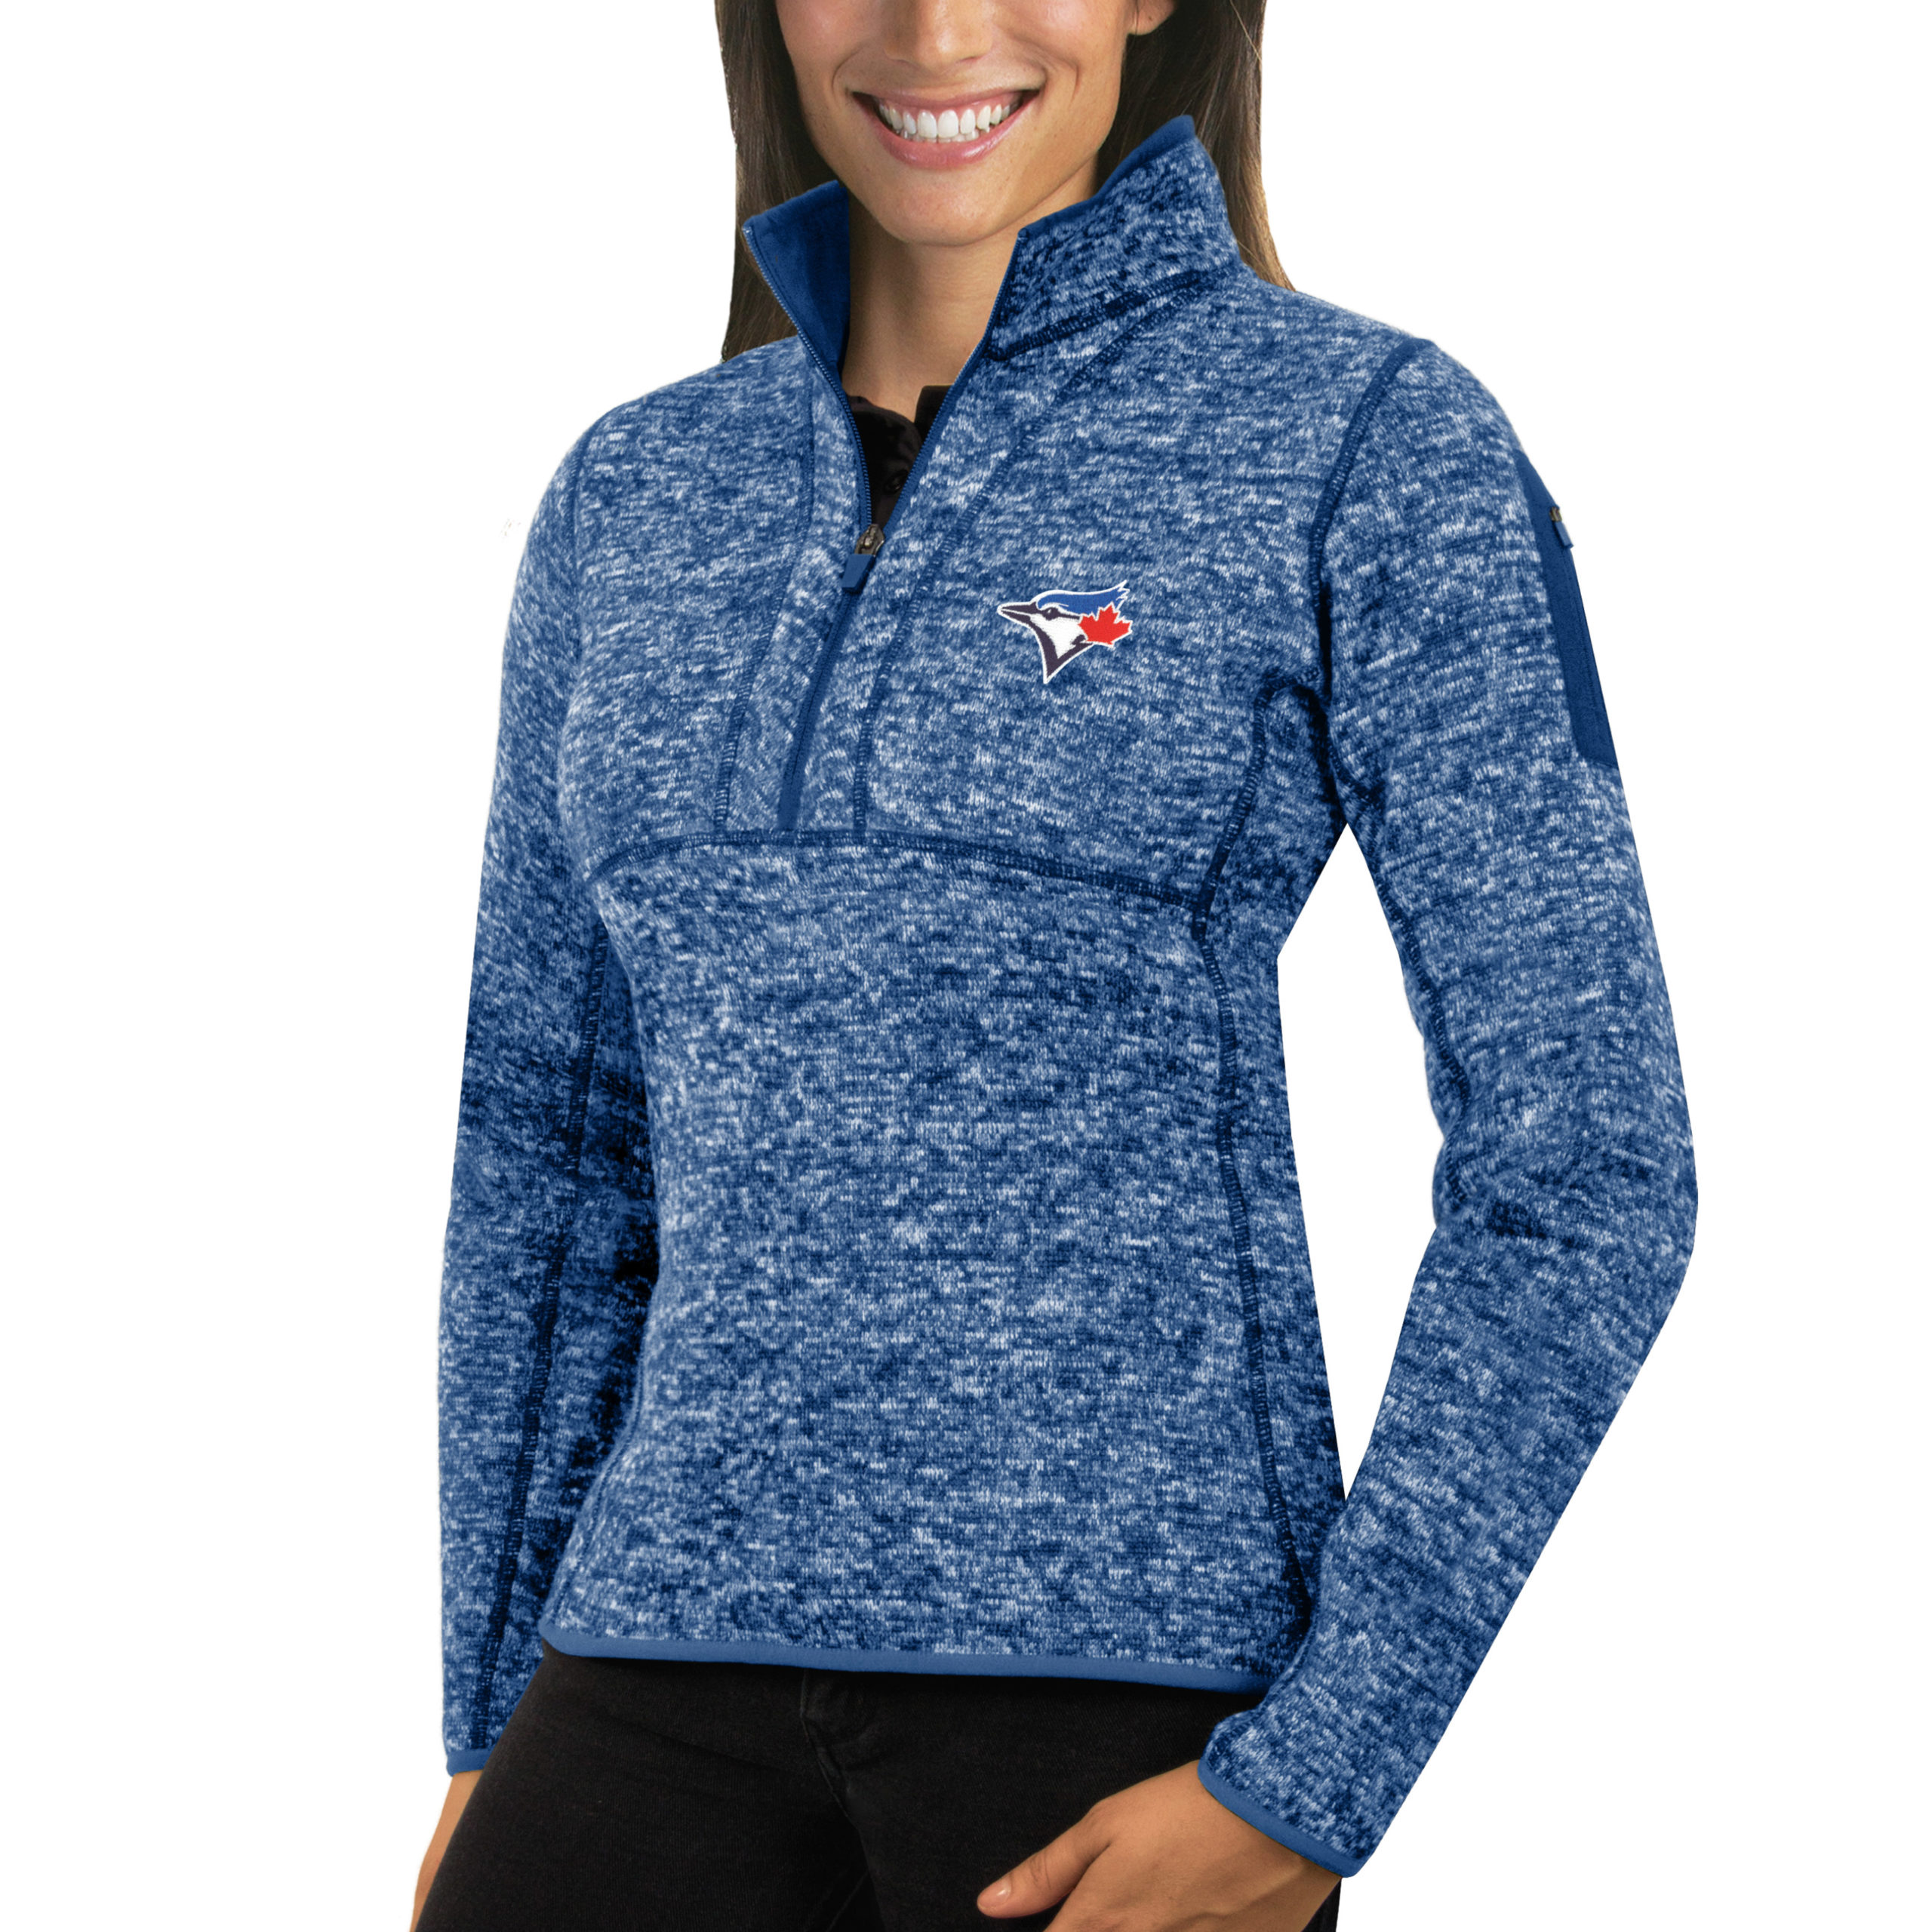 Toronto Blue Jays Antigua Women's Fortune Half-Zip Pullover Sweater - Heathered Royal